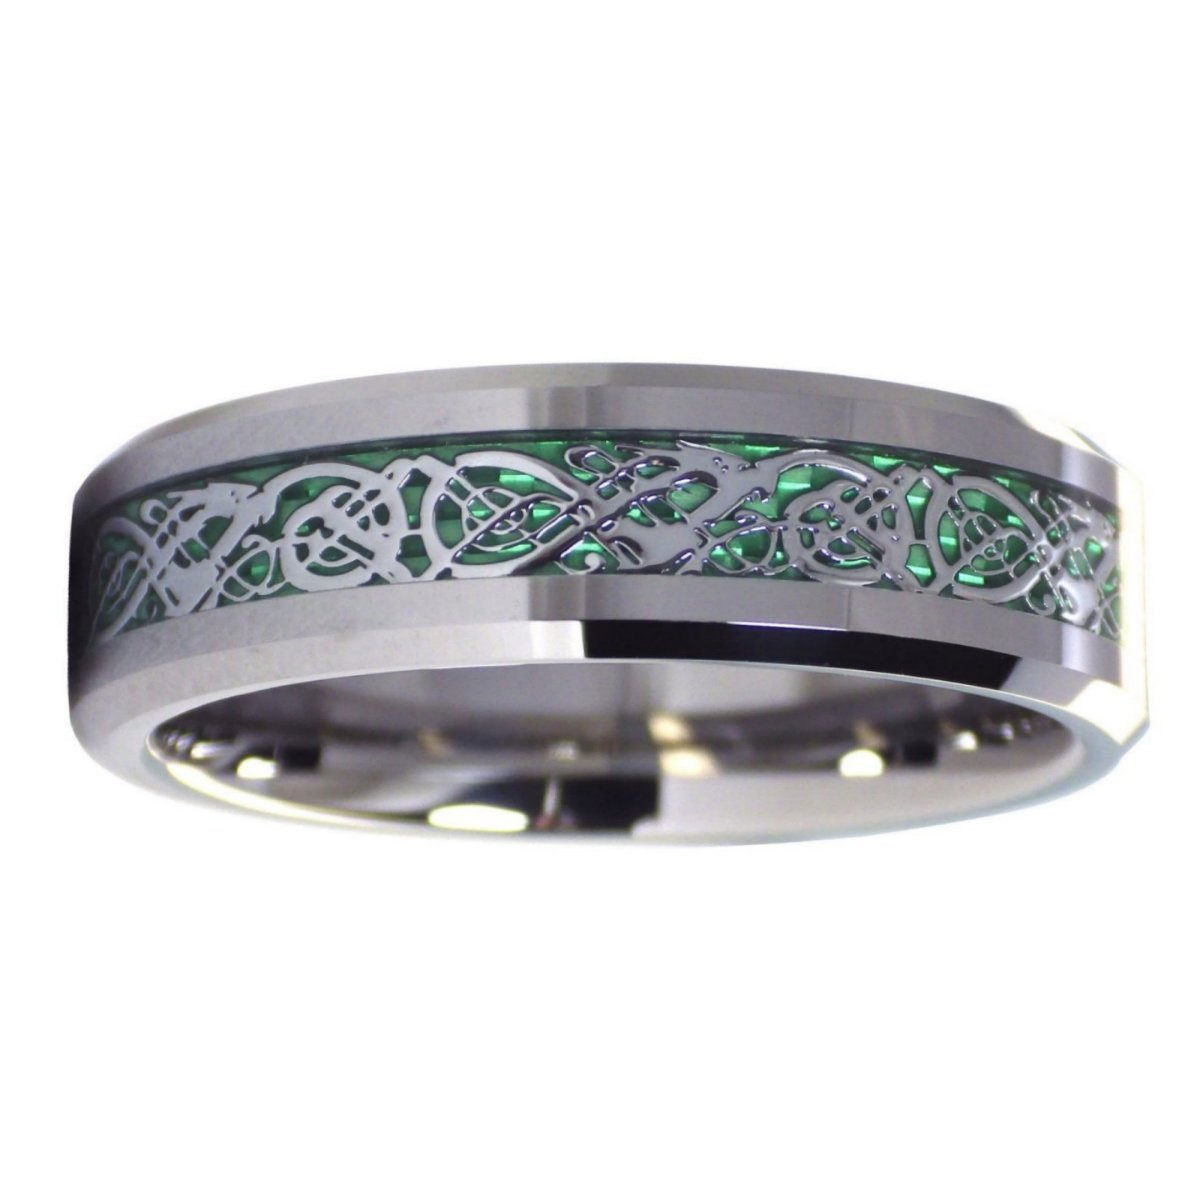 Fantasy Forge Jewelry Celtic Dragon Tungsten Ring Green Carbon Fiber Wedding Band 6MM Size 6.5